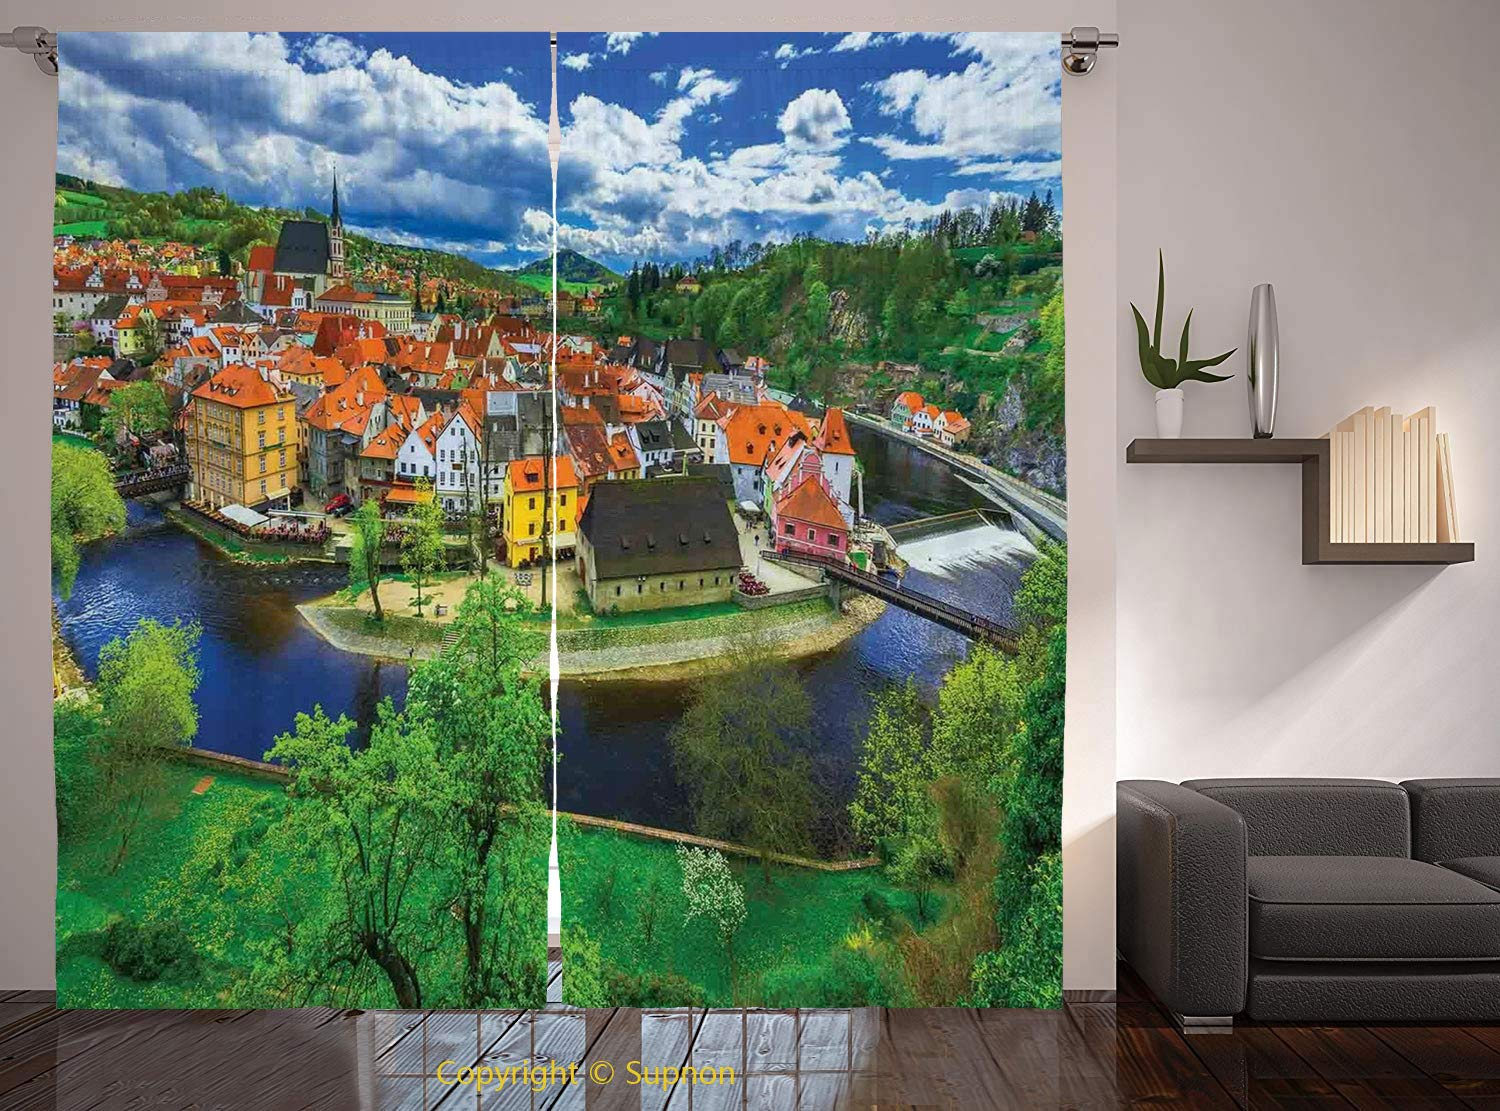 Living Room Bedroom Window Drapes/Rod Pocket Curtain Panel Satin Curtains/2 Curtain Panels/108 x 84 Inch/Wanderlust Decor,Cesky Krumlov Czech Republic Buildings Cathedral Touristic Place Panoramic Pic